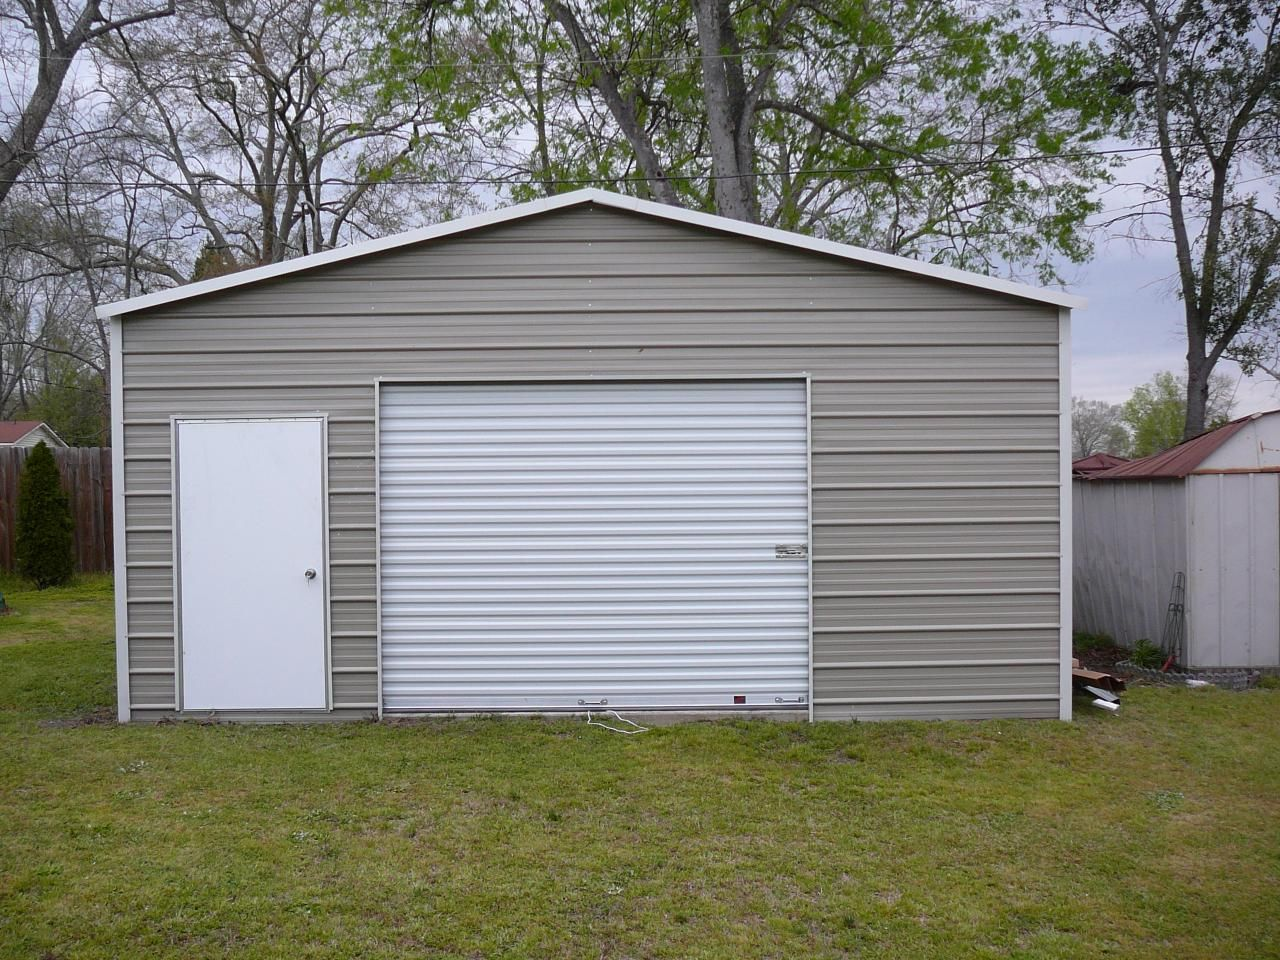 prefab steel garages uk (With images) Modern garage